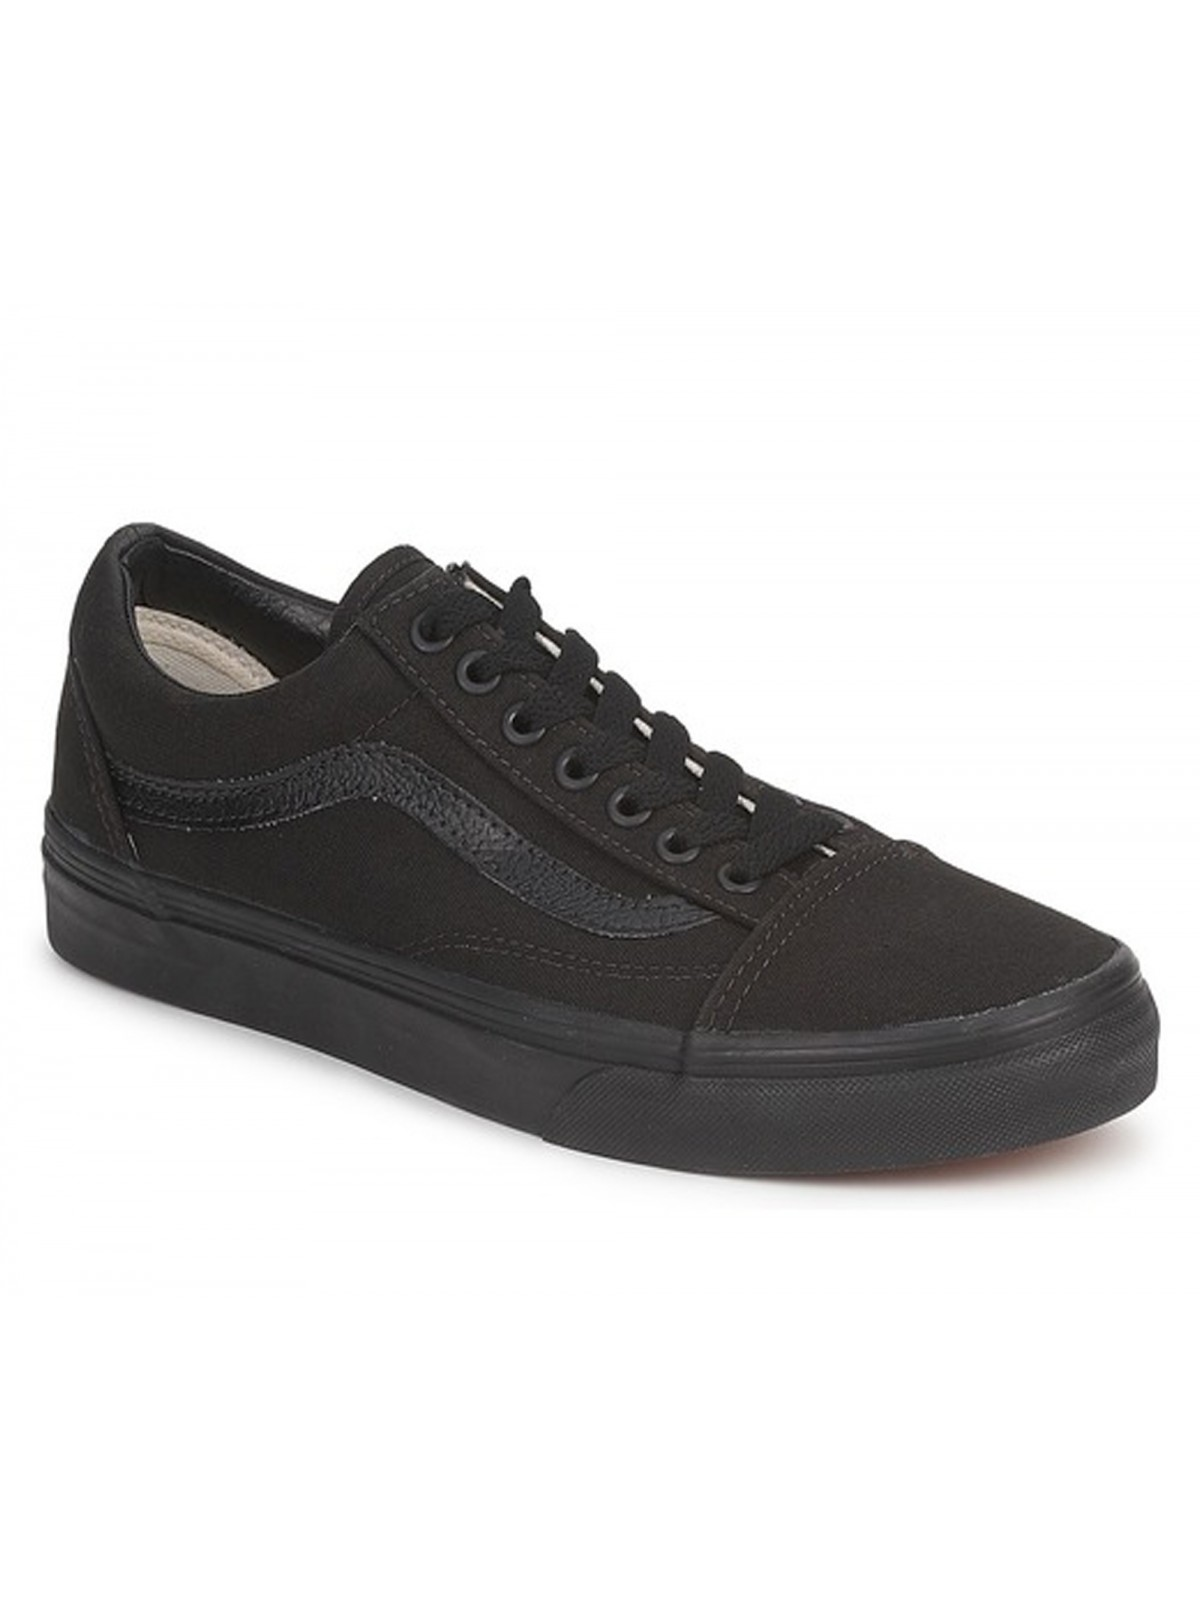 Vans Old Skool canvas mono noir